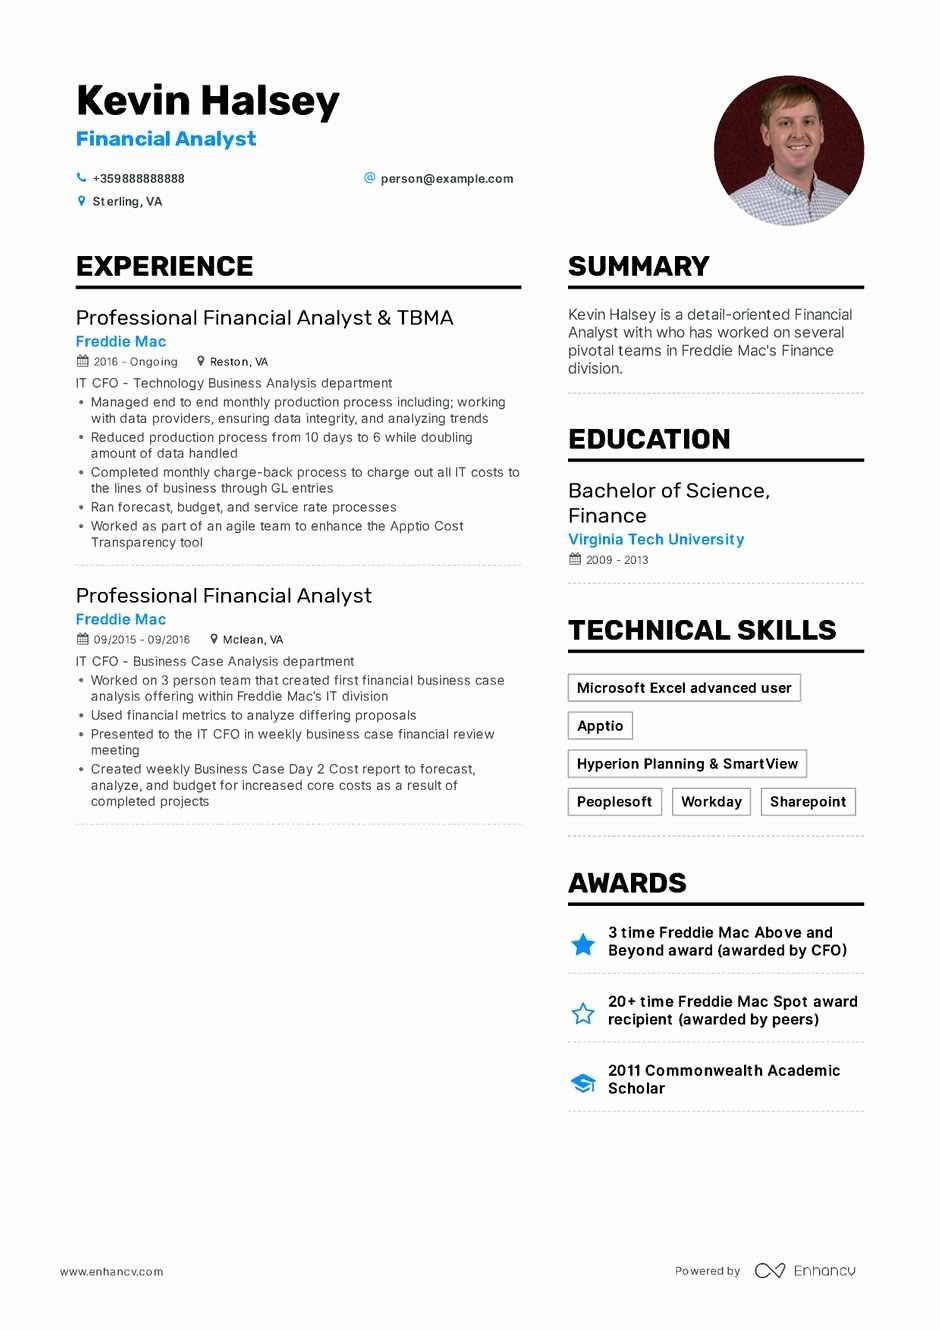 Financial Analyst Resume Template Awesome Financial